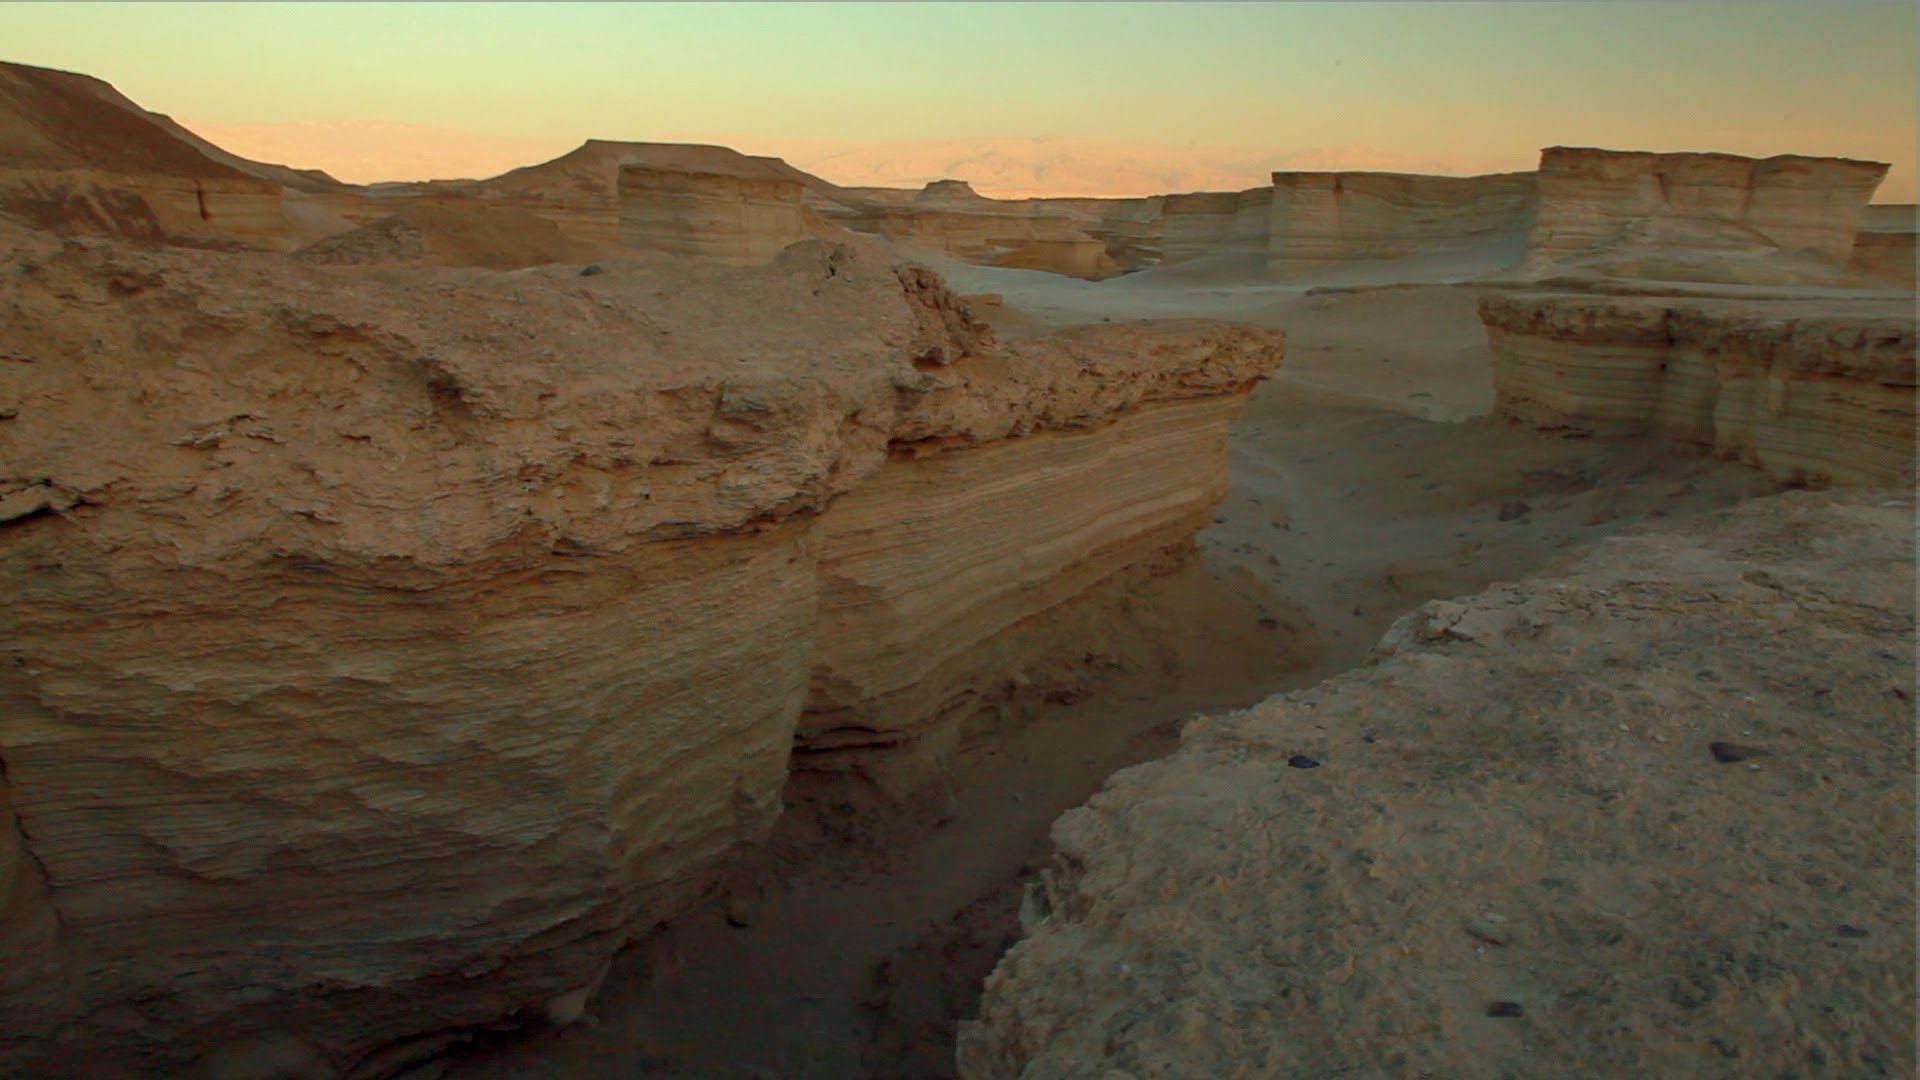 Stock Footage of a desert landscape at twilight in Israel.